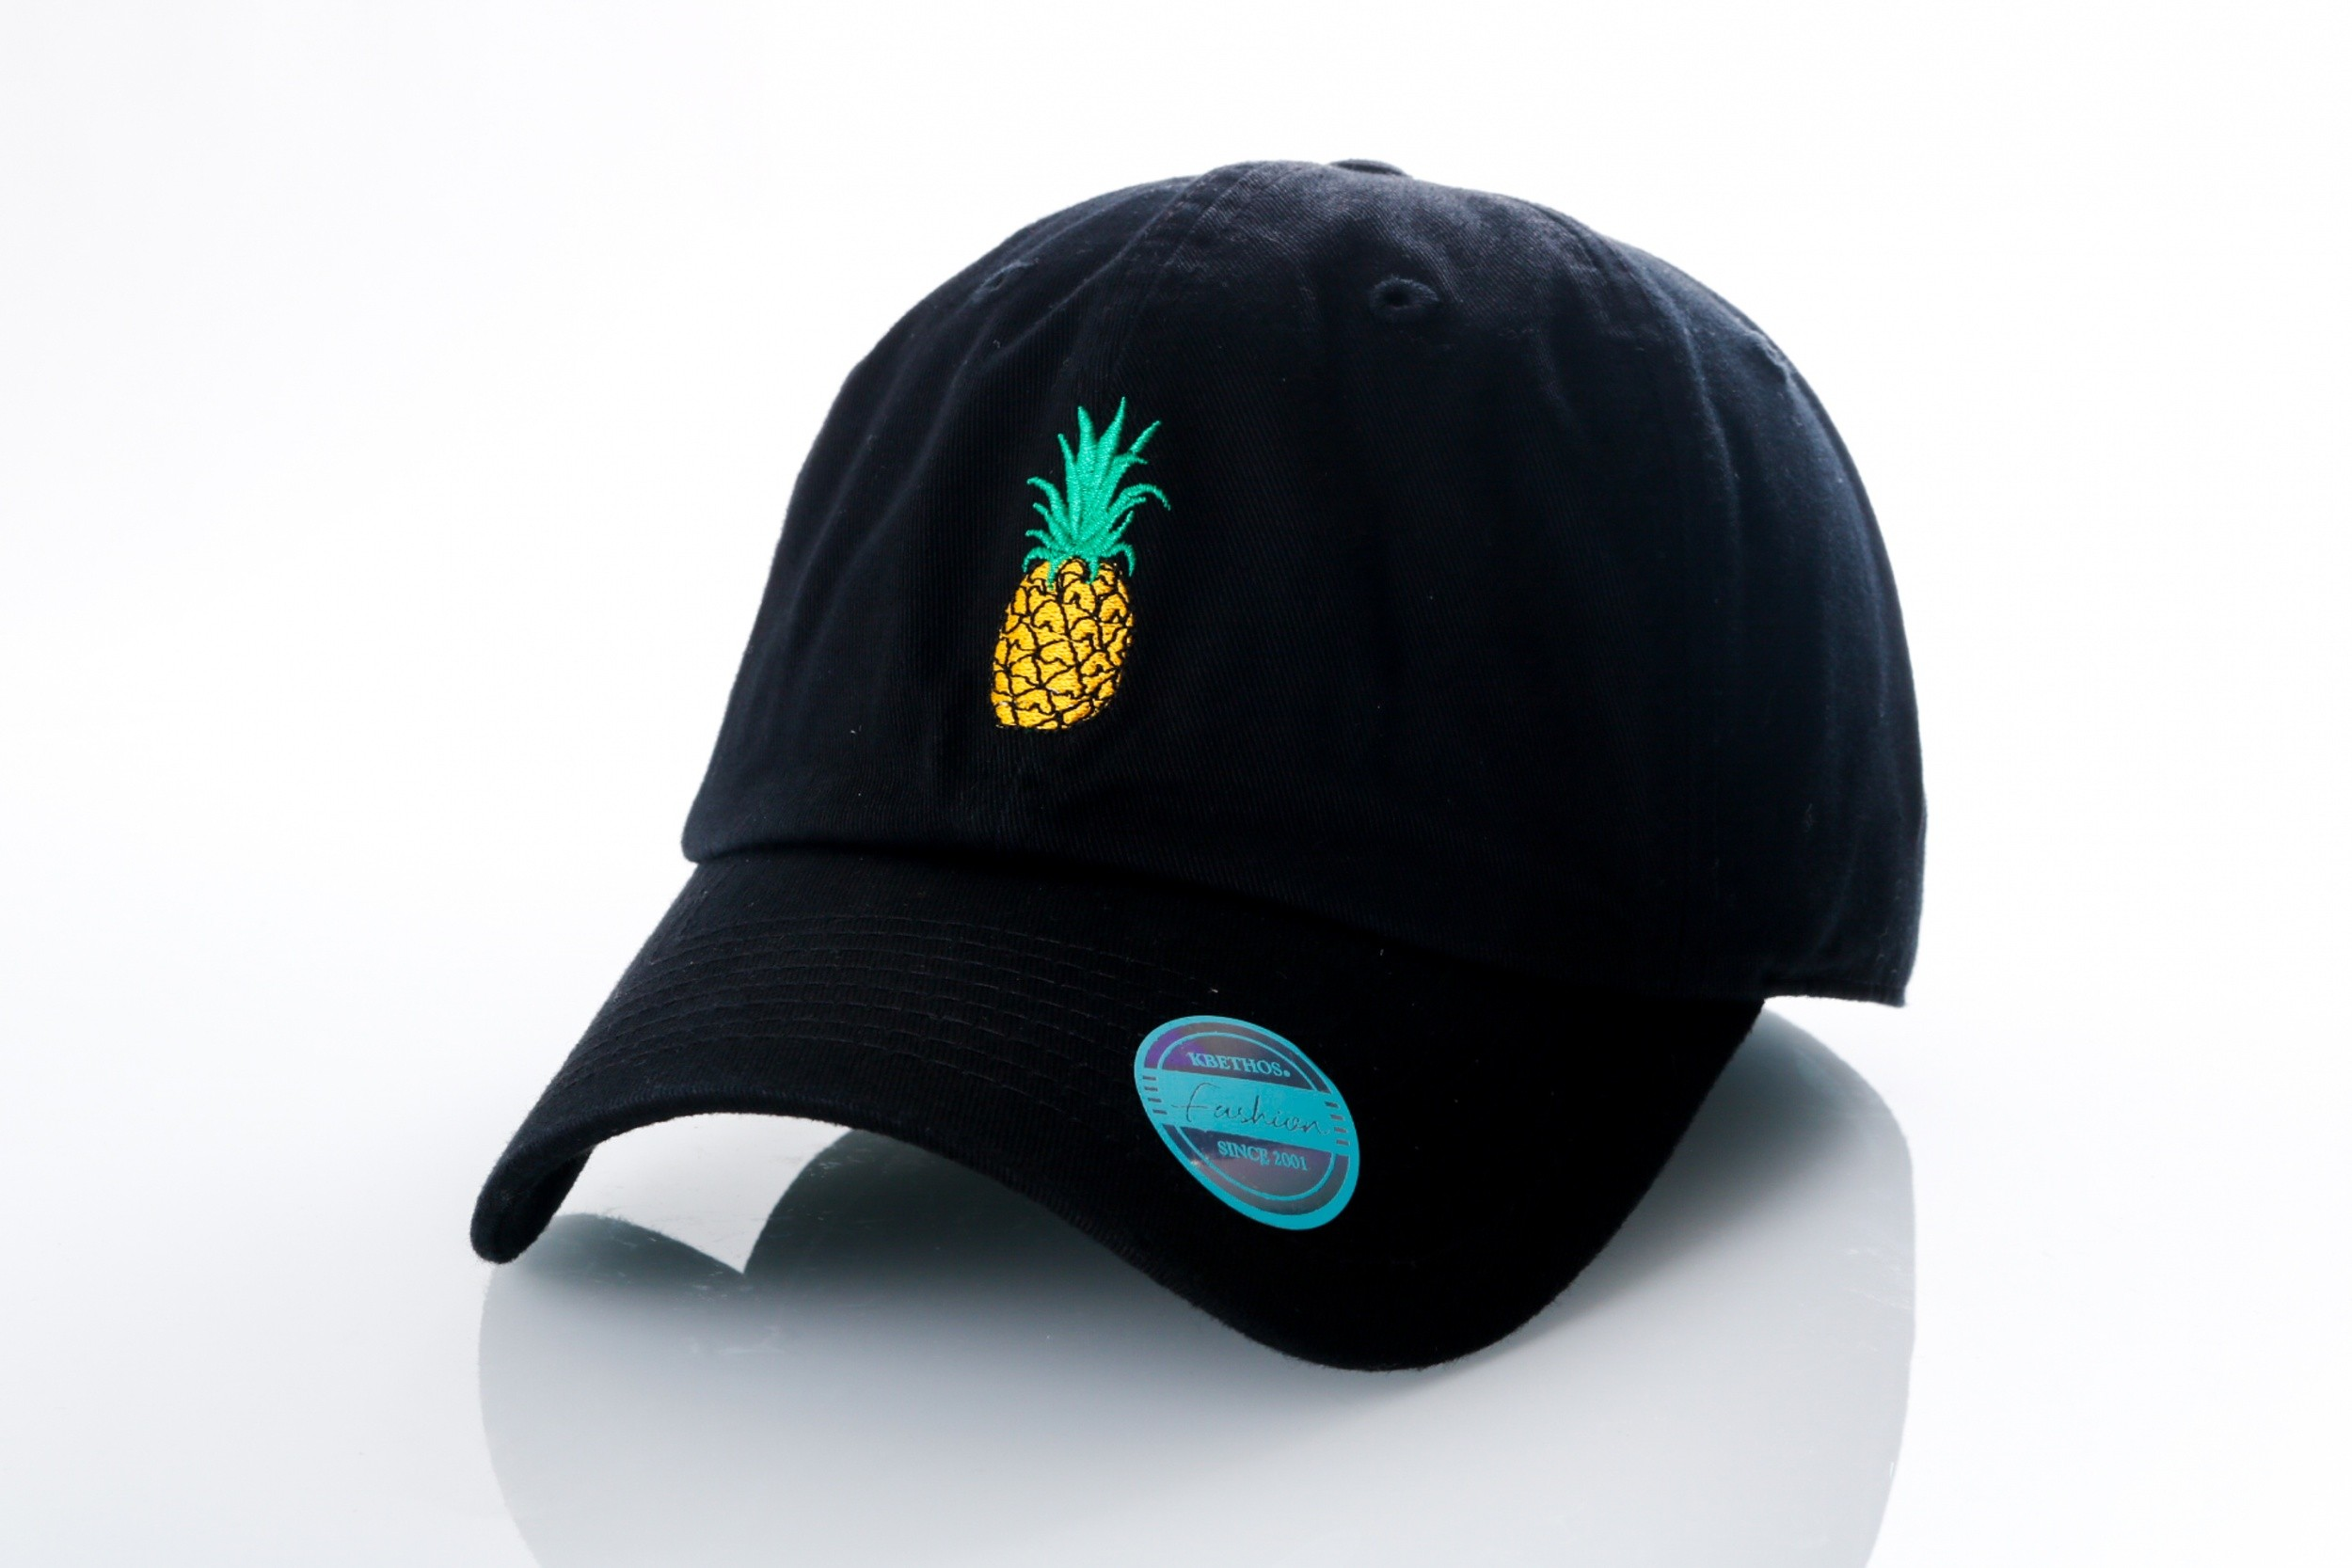 Foto van Ethos Pineapple KBSV-021 black KBSV-021 dad cap black